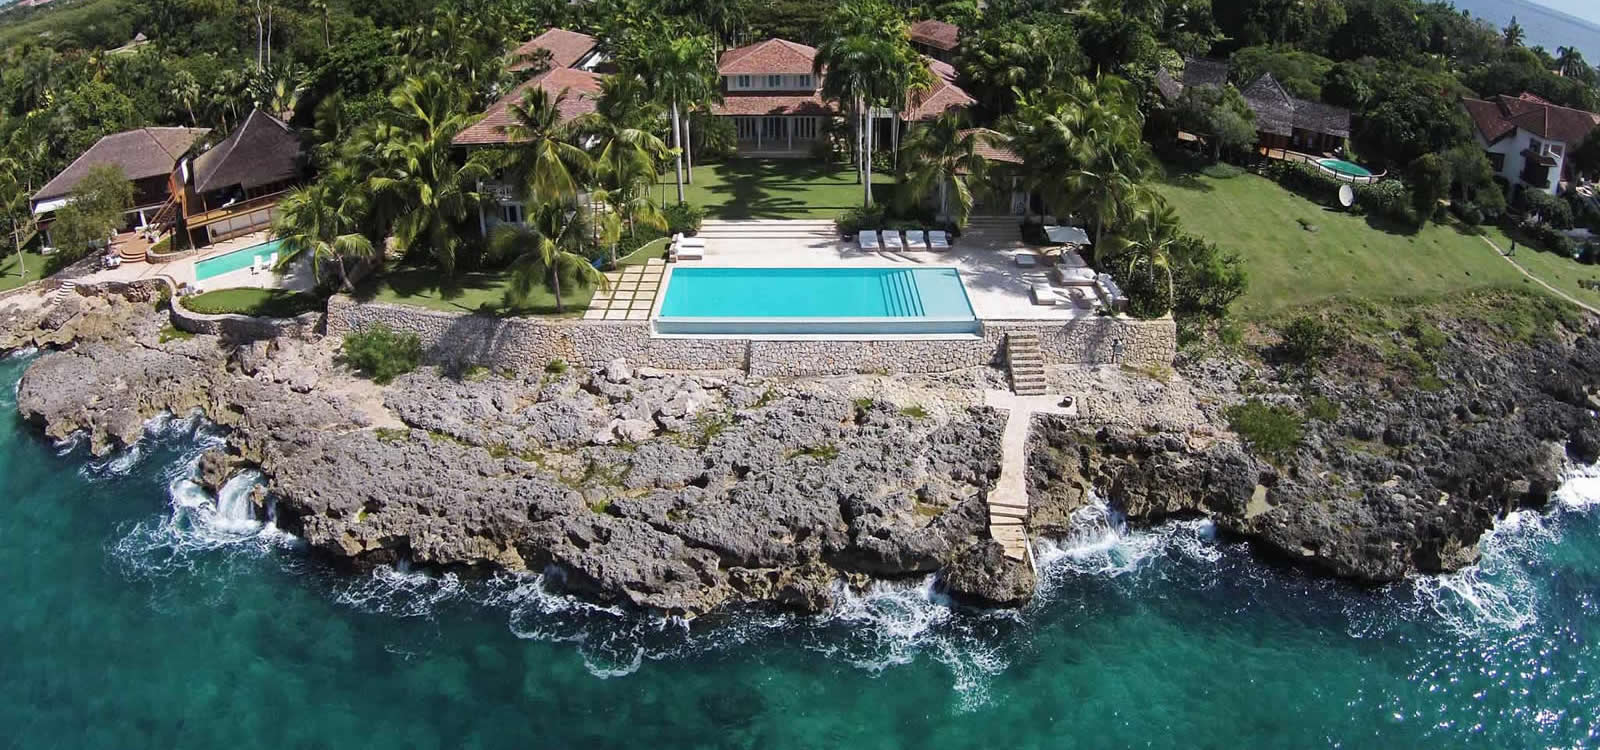 One of the most lavish Caribbean mansions for sale - La Romana, Dominican Republic